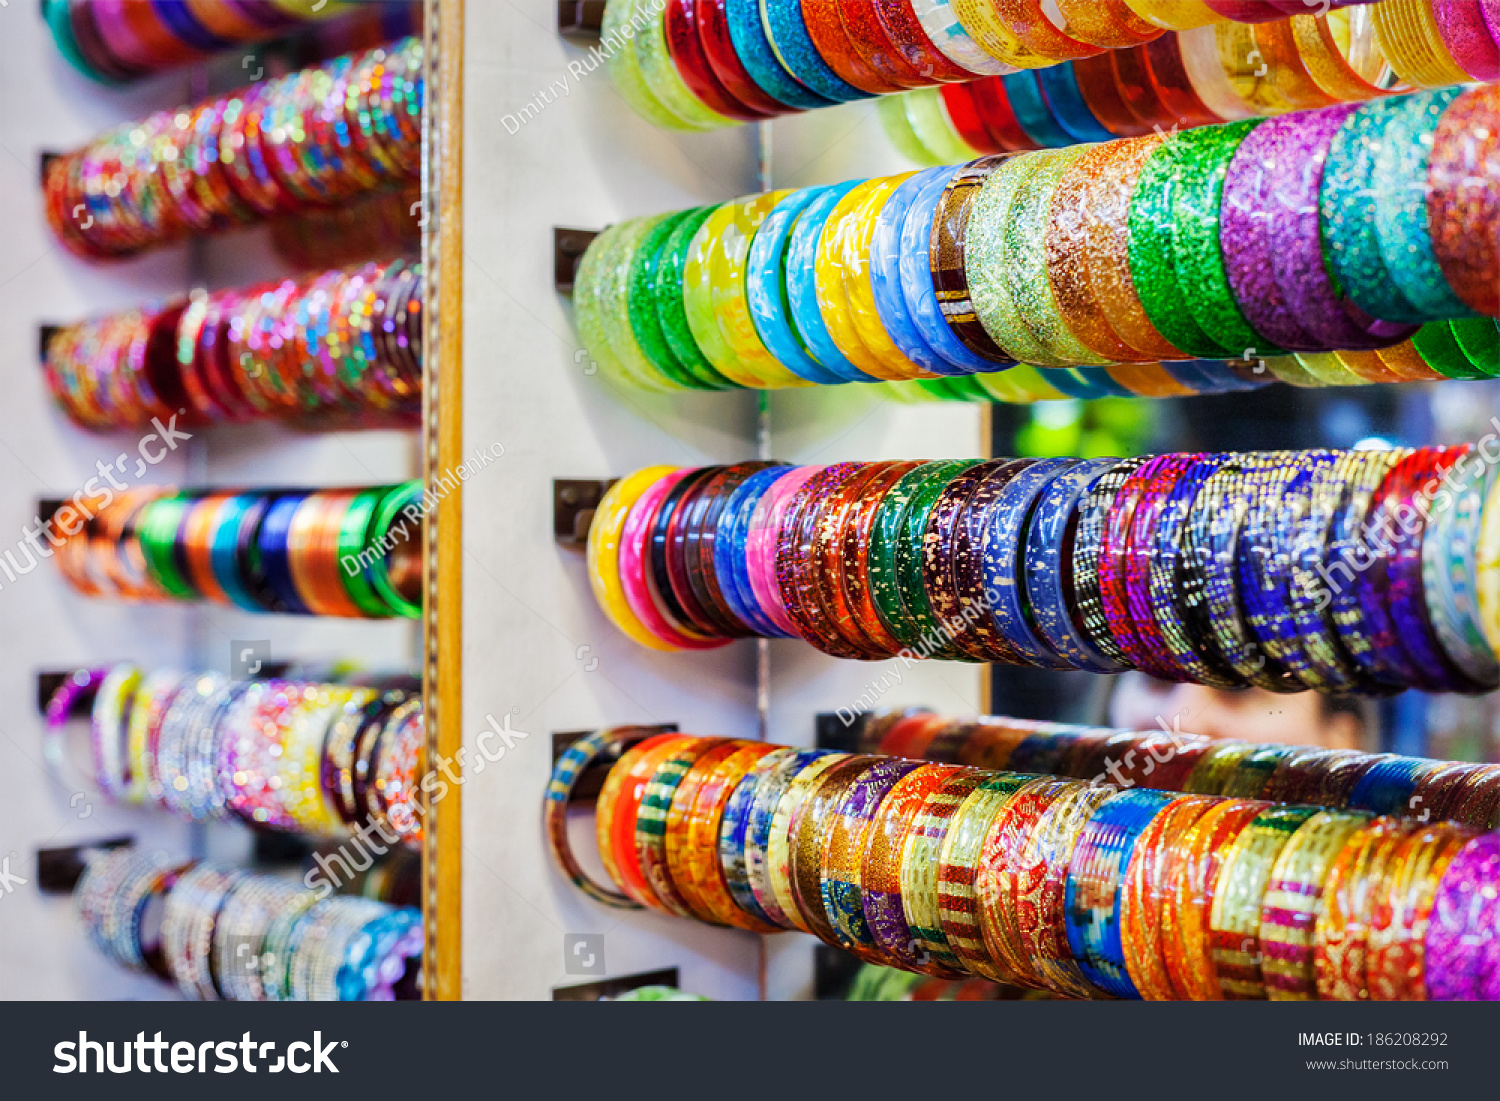 dealers bangle pictures bzdet sana suncity photos hyderabad shop house near langar bangles govt school